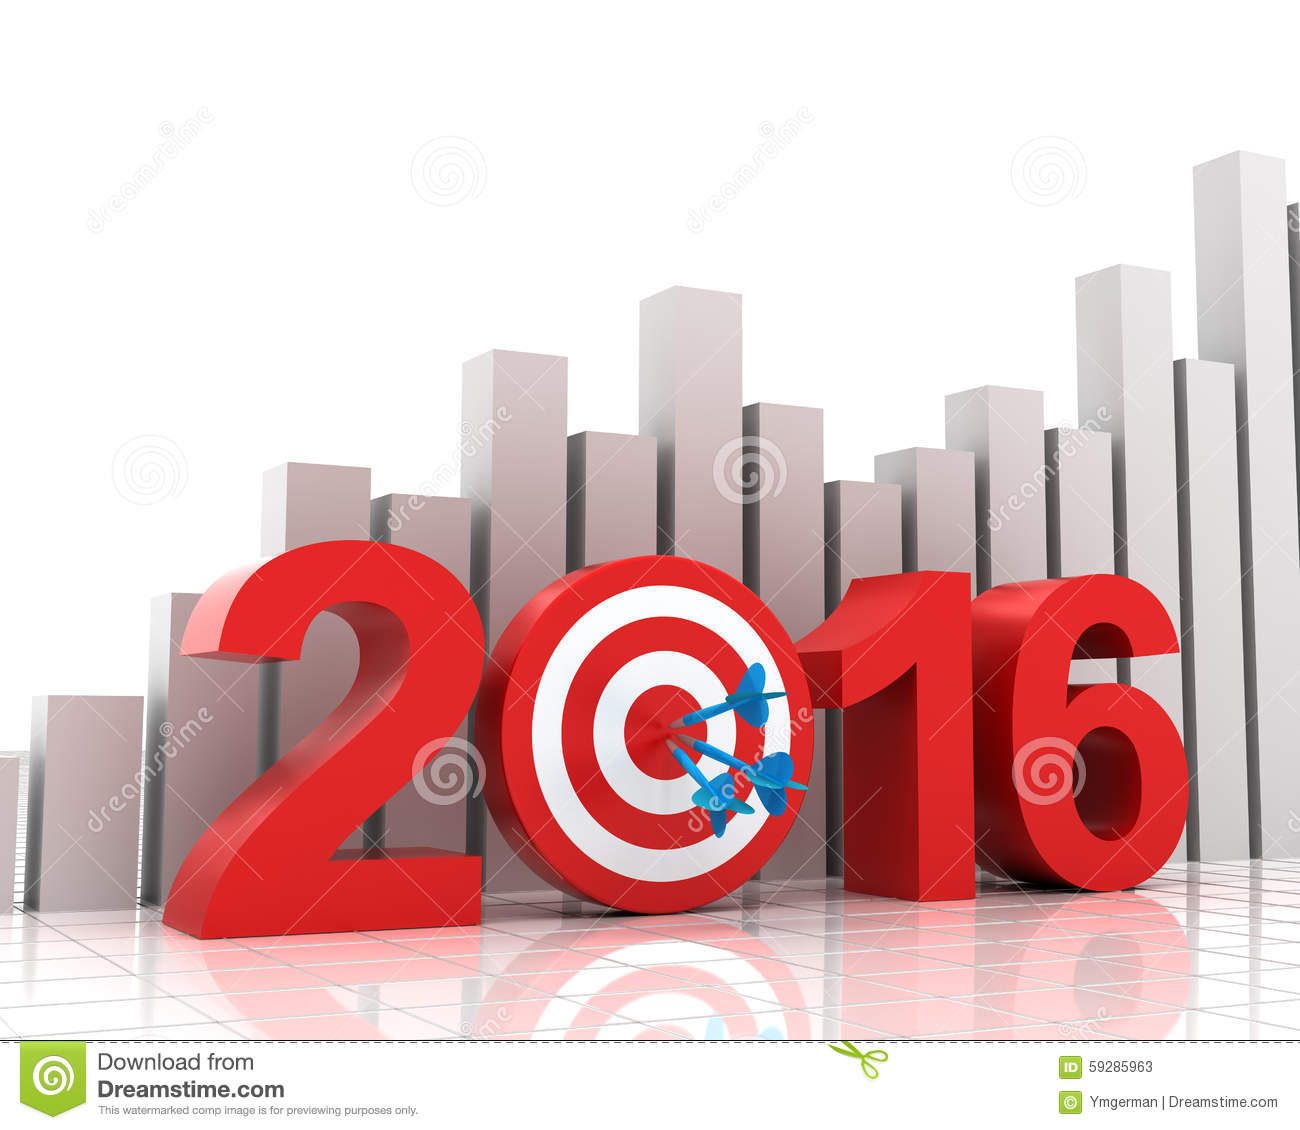 Business target for 2016 with bar chart stock illustration business target for 2016 with bar chart geenschuldenfo Images